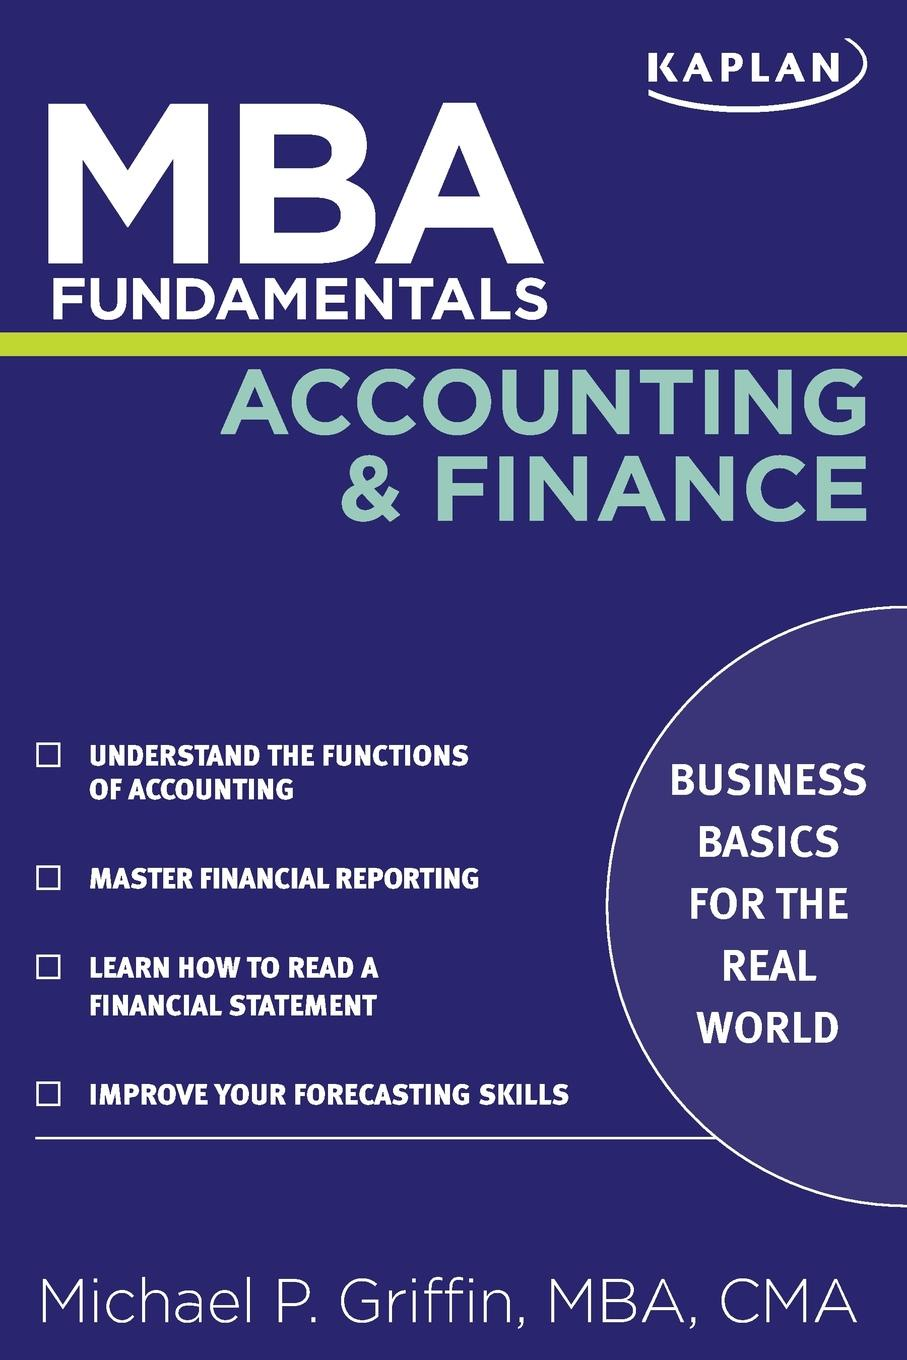 MBA Fundamentals Accounting and Finance How do you make sense of the accounting report or balance sheet...